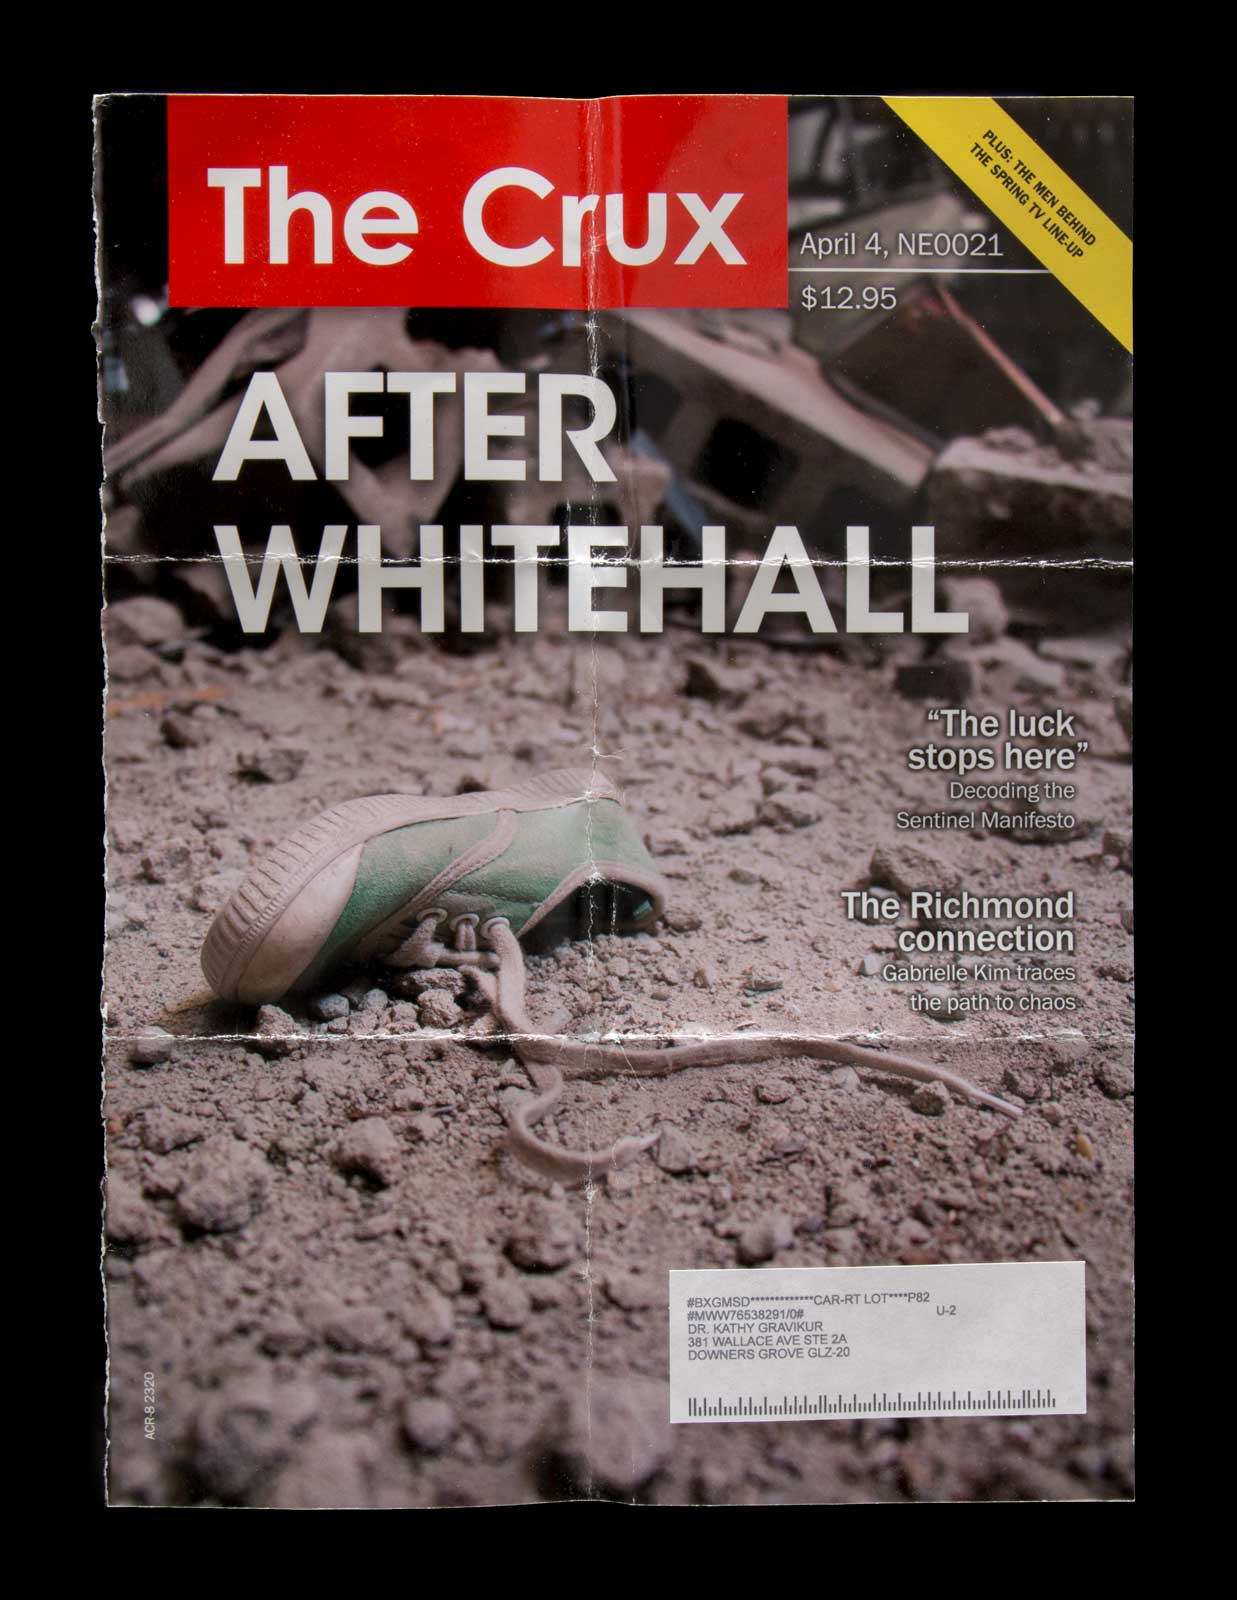 Crux magazine page found in the envelope in the Jarndyke Ark